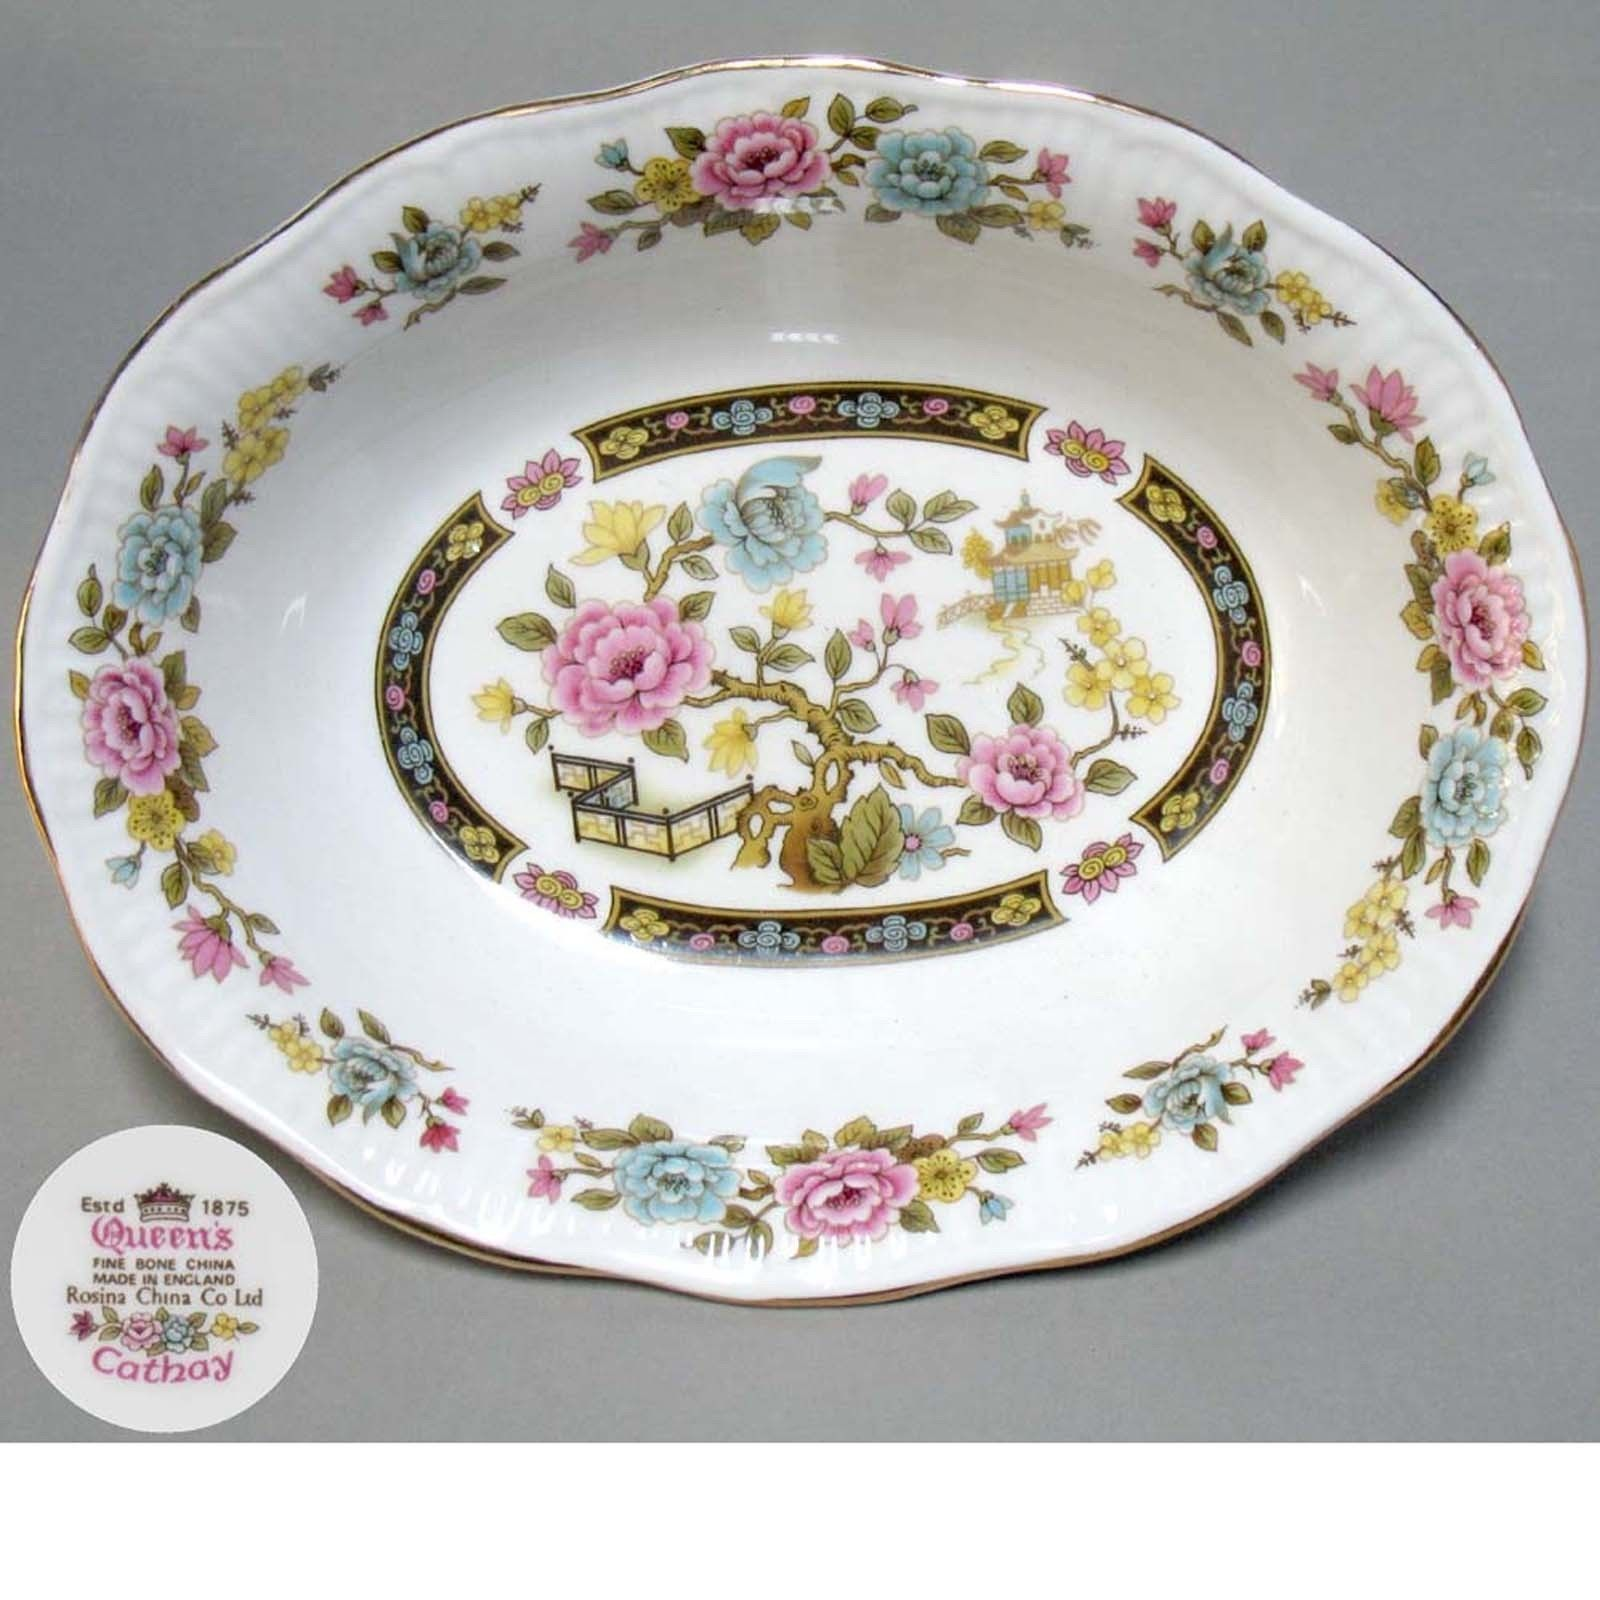 ROSINA QUEENu0027S 81 pc. for 12 persons English Bone China Dinnerware set Cathay - CAD  sc 1 st  Pinterest & ROSINA QUEENu0027S 81 pc. for 12 persons English Bone China Dinnerware ...